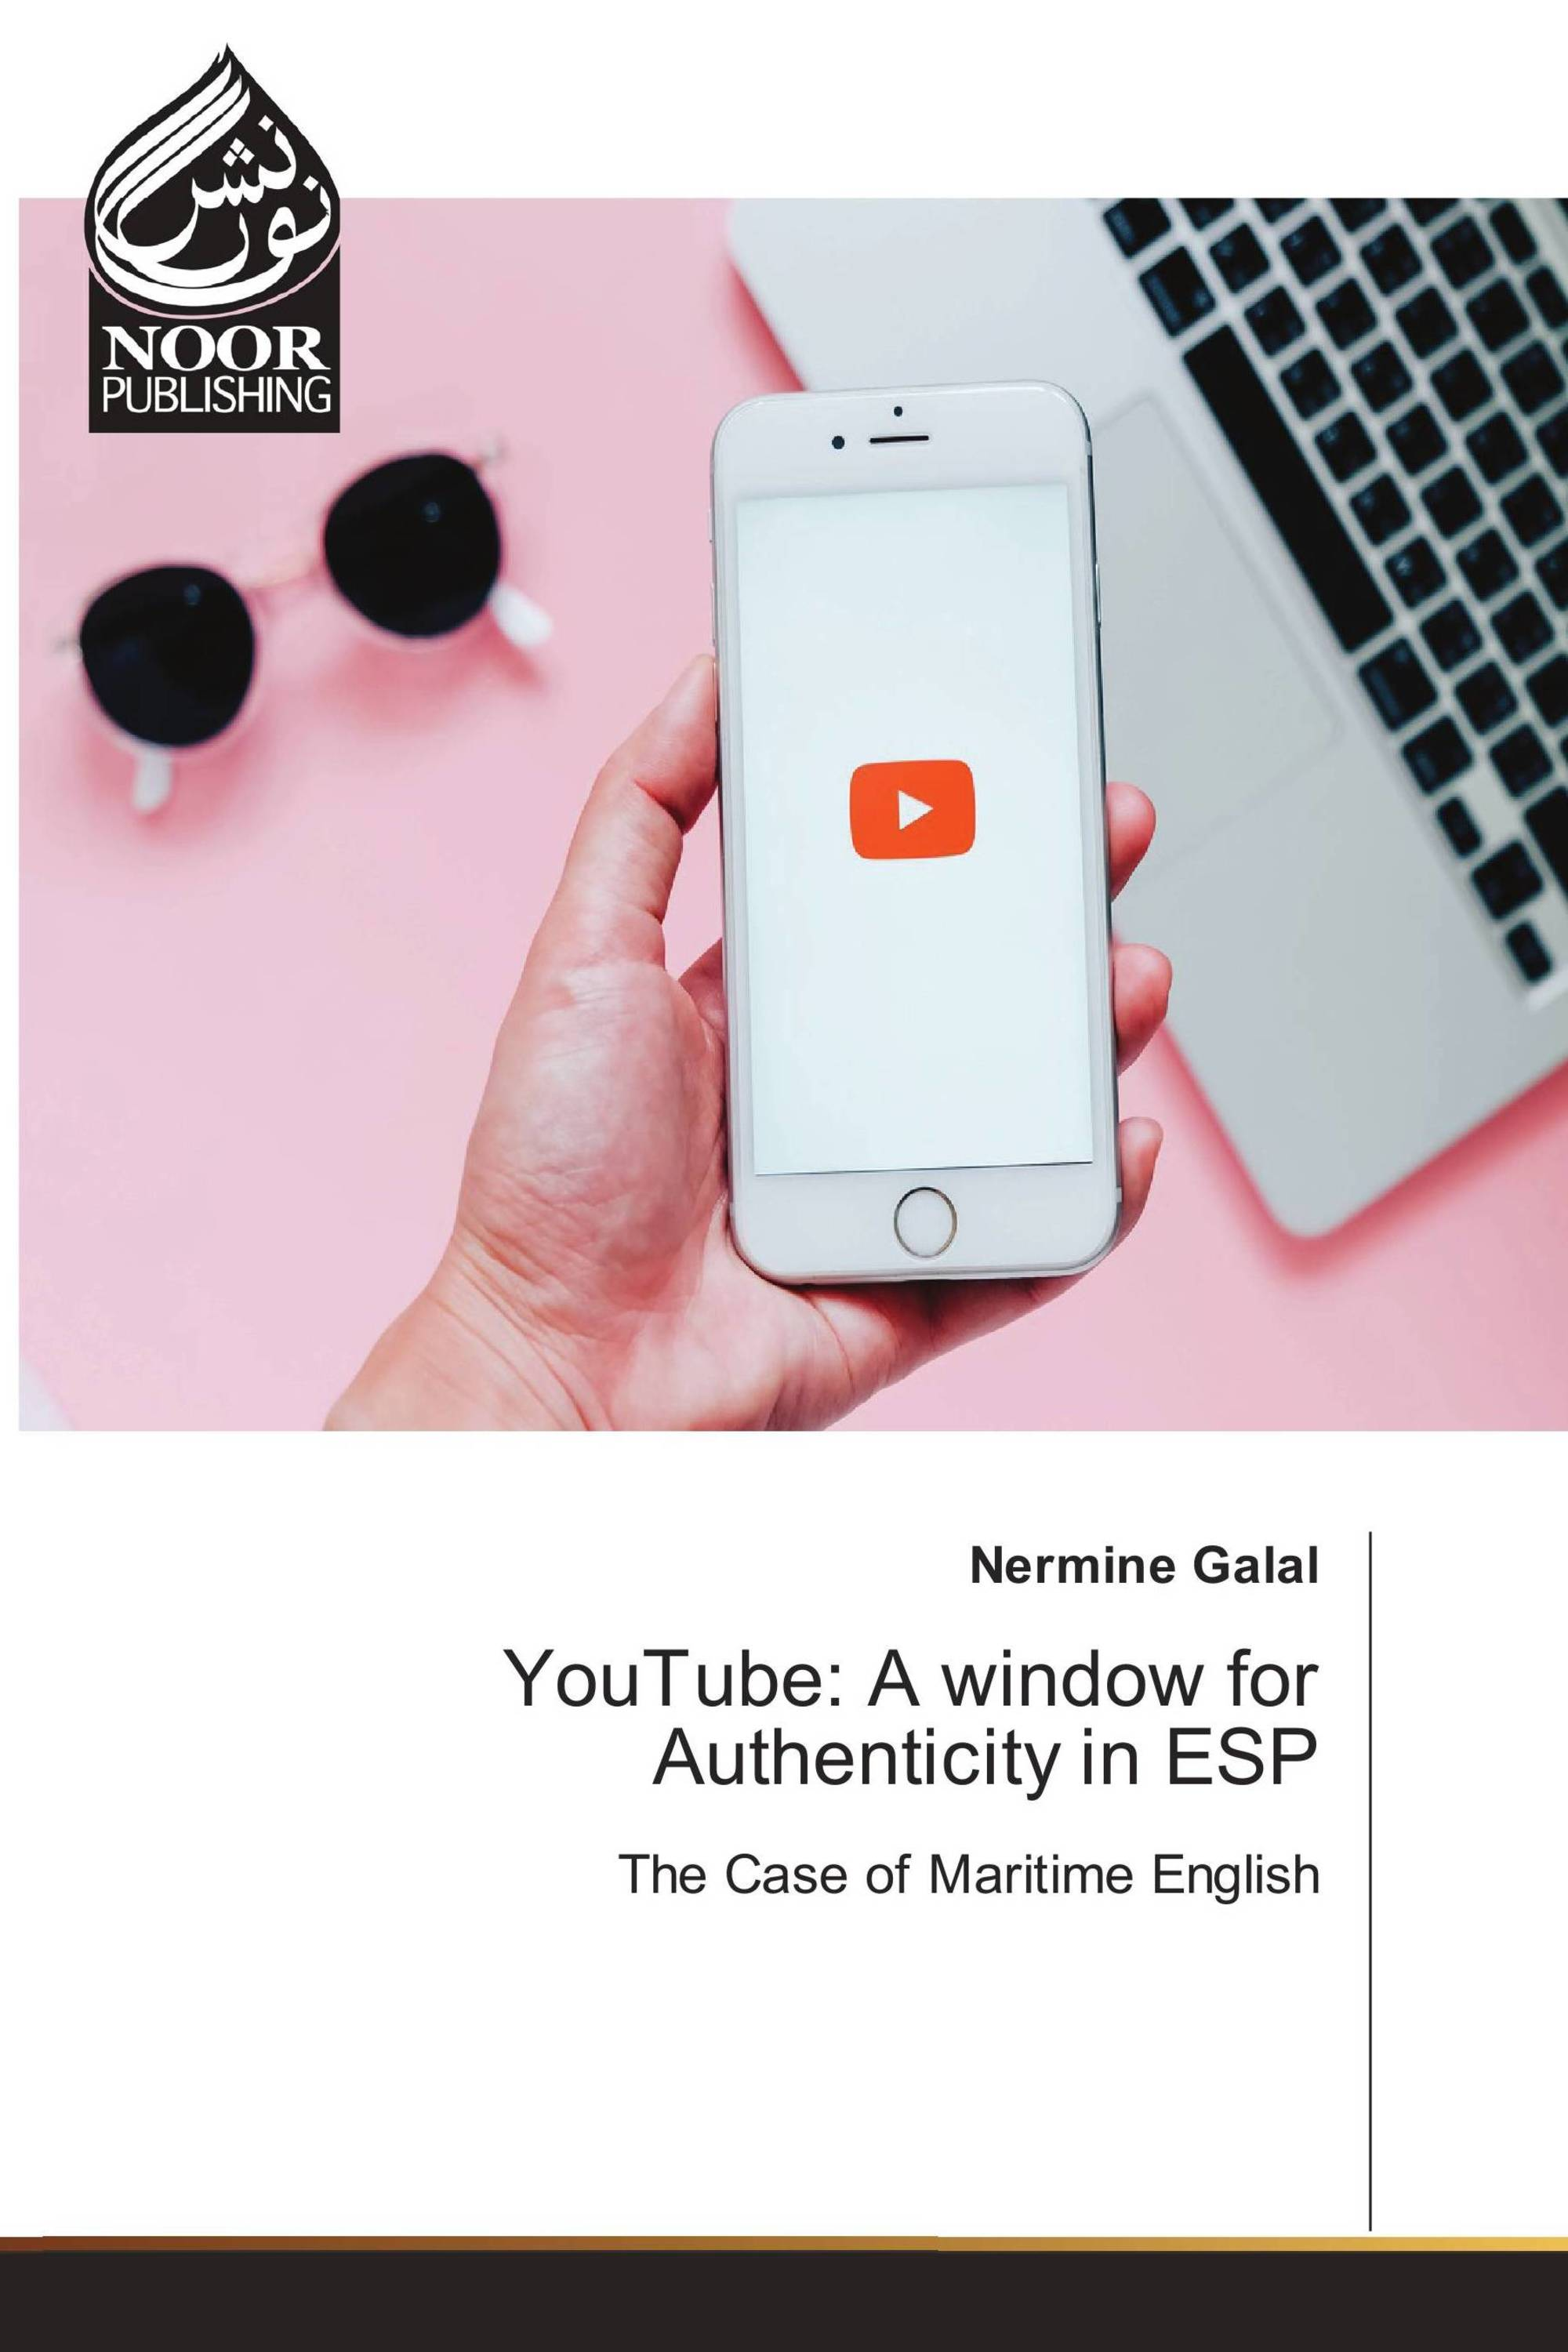 YouTube: A window for Authenticity in ESP